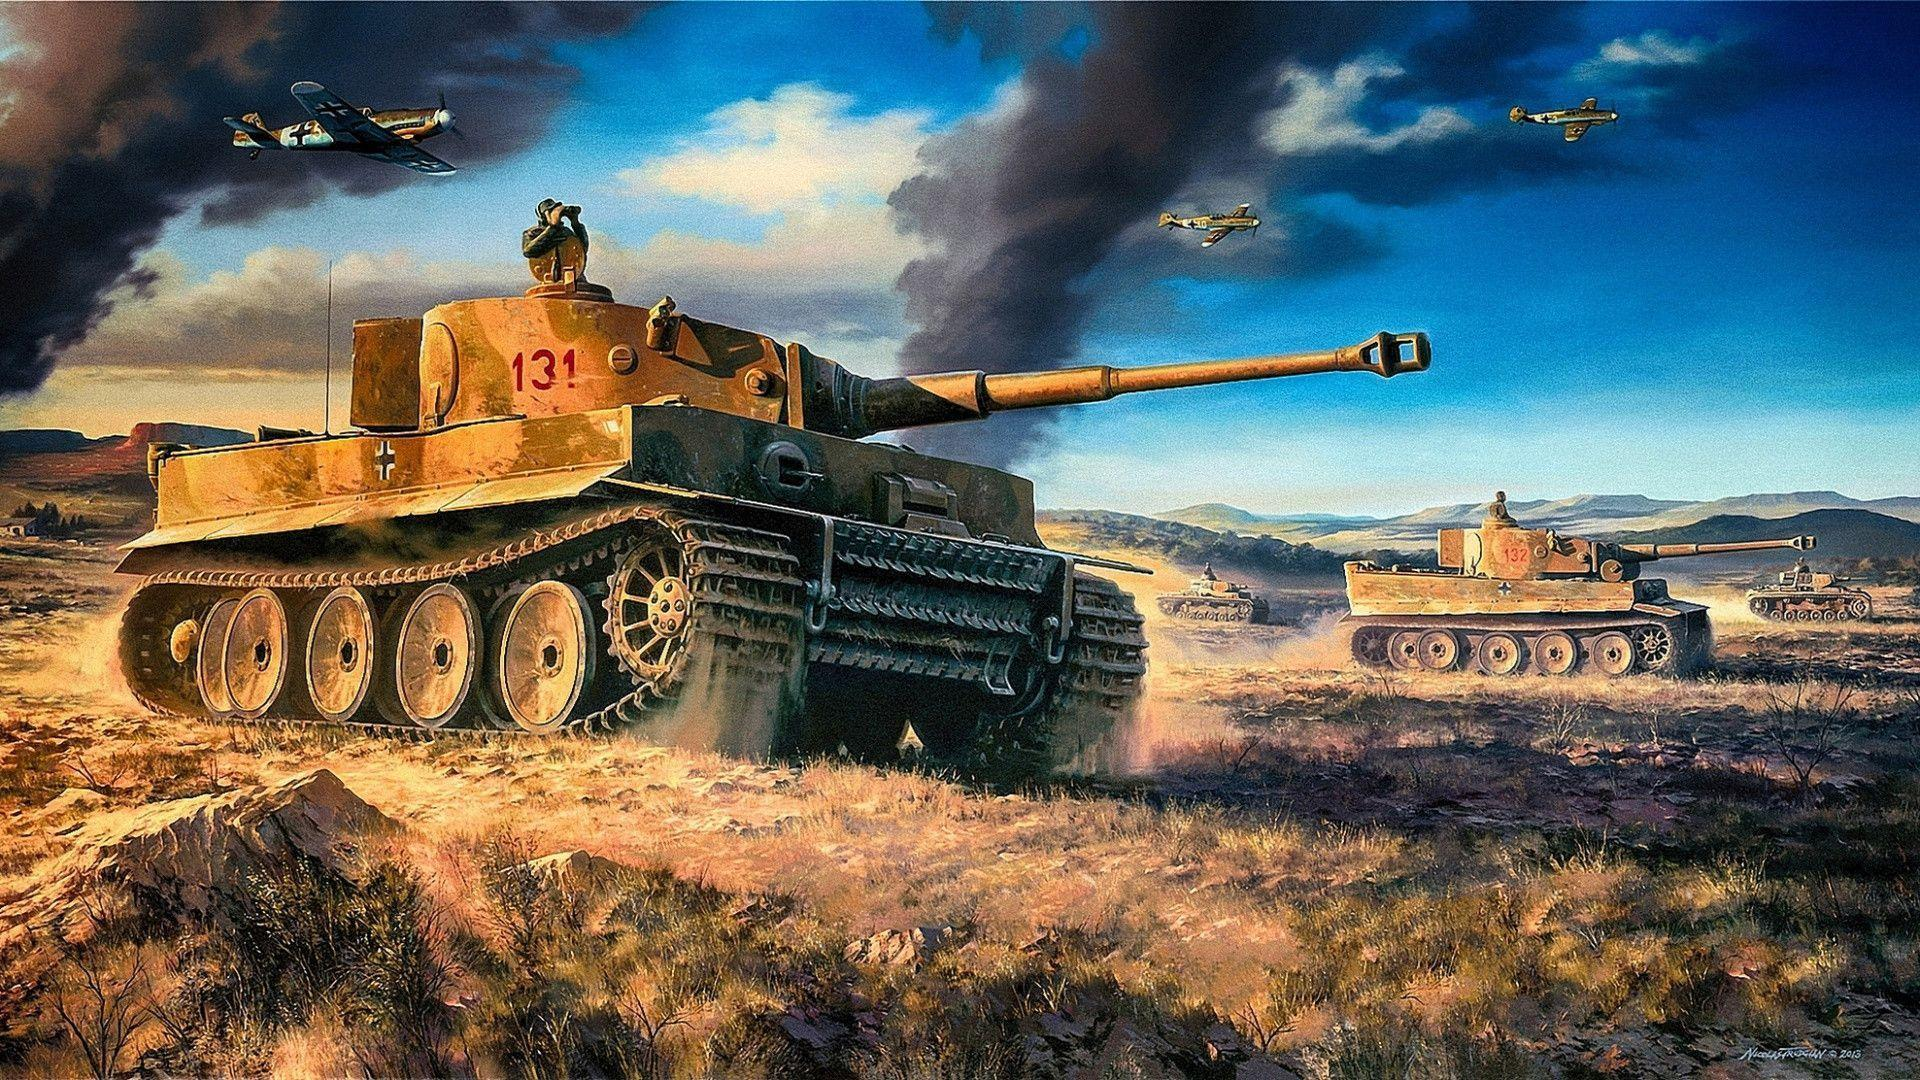 Battle Tanks Wallpaper